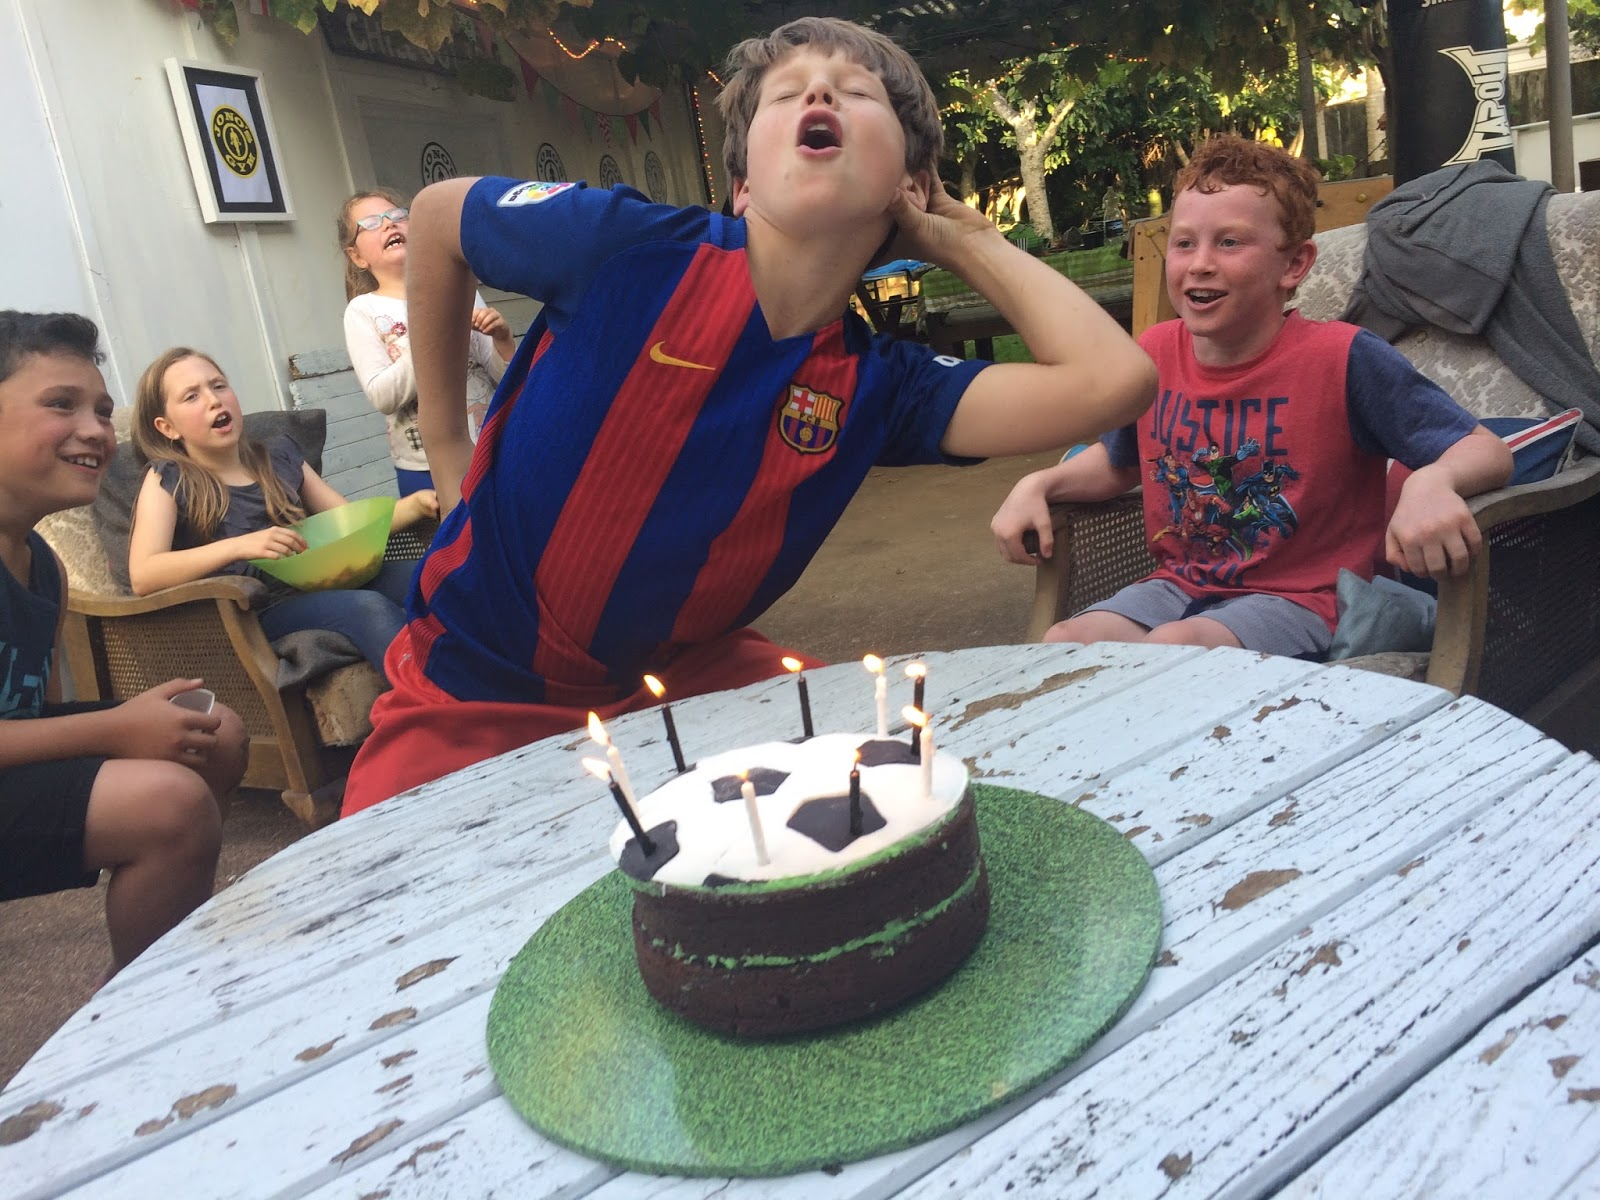 The birthday boy and his pals loved his birthday cake